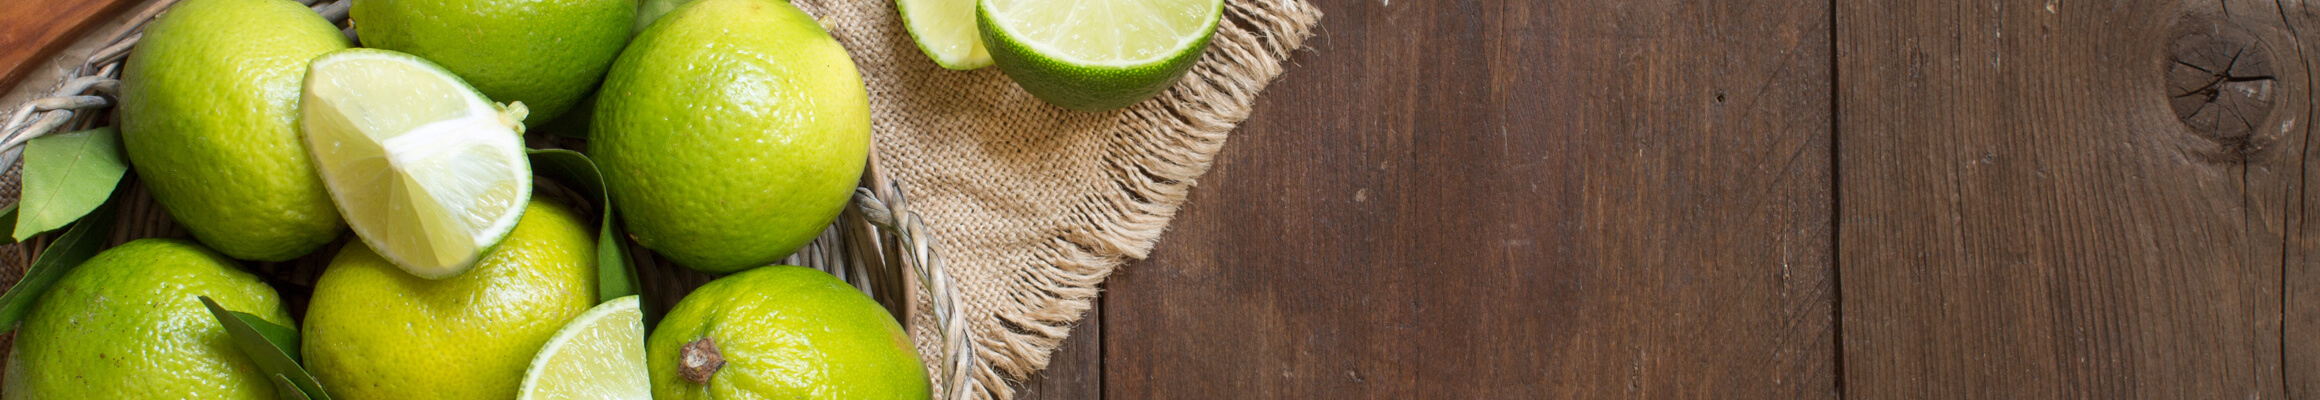 A basket of limes on a wooden background.